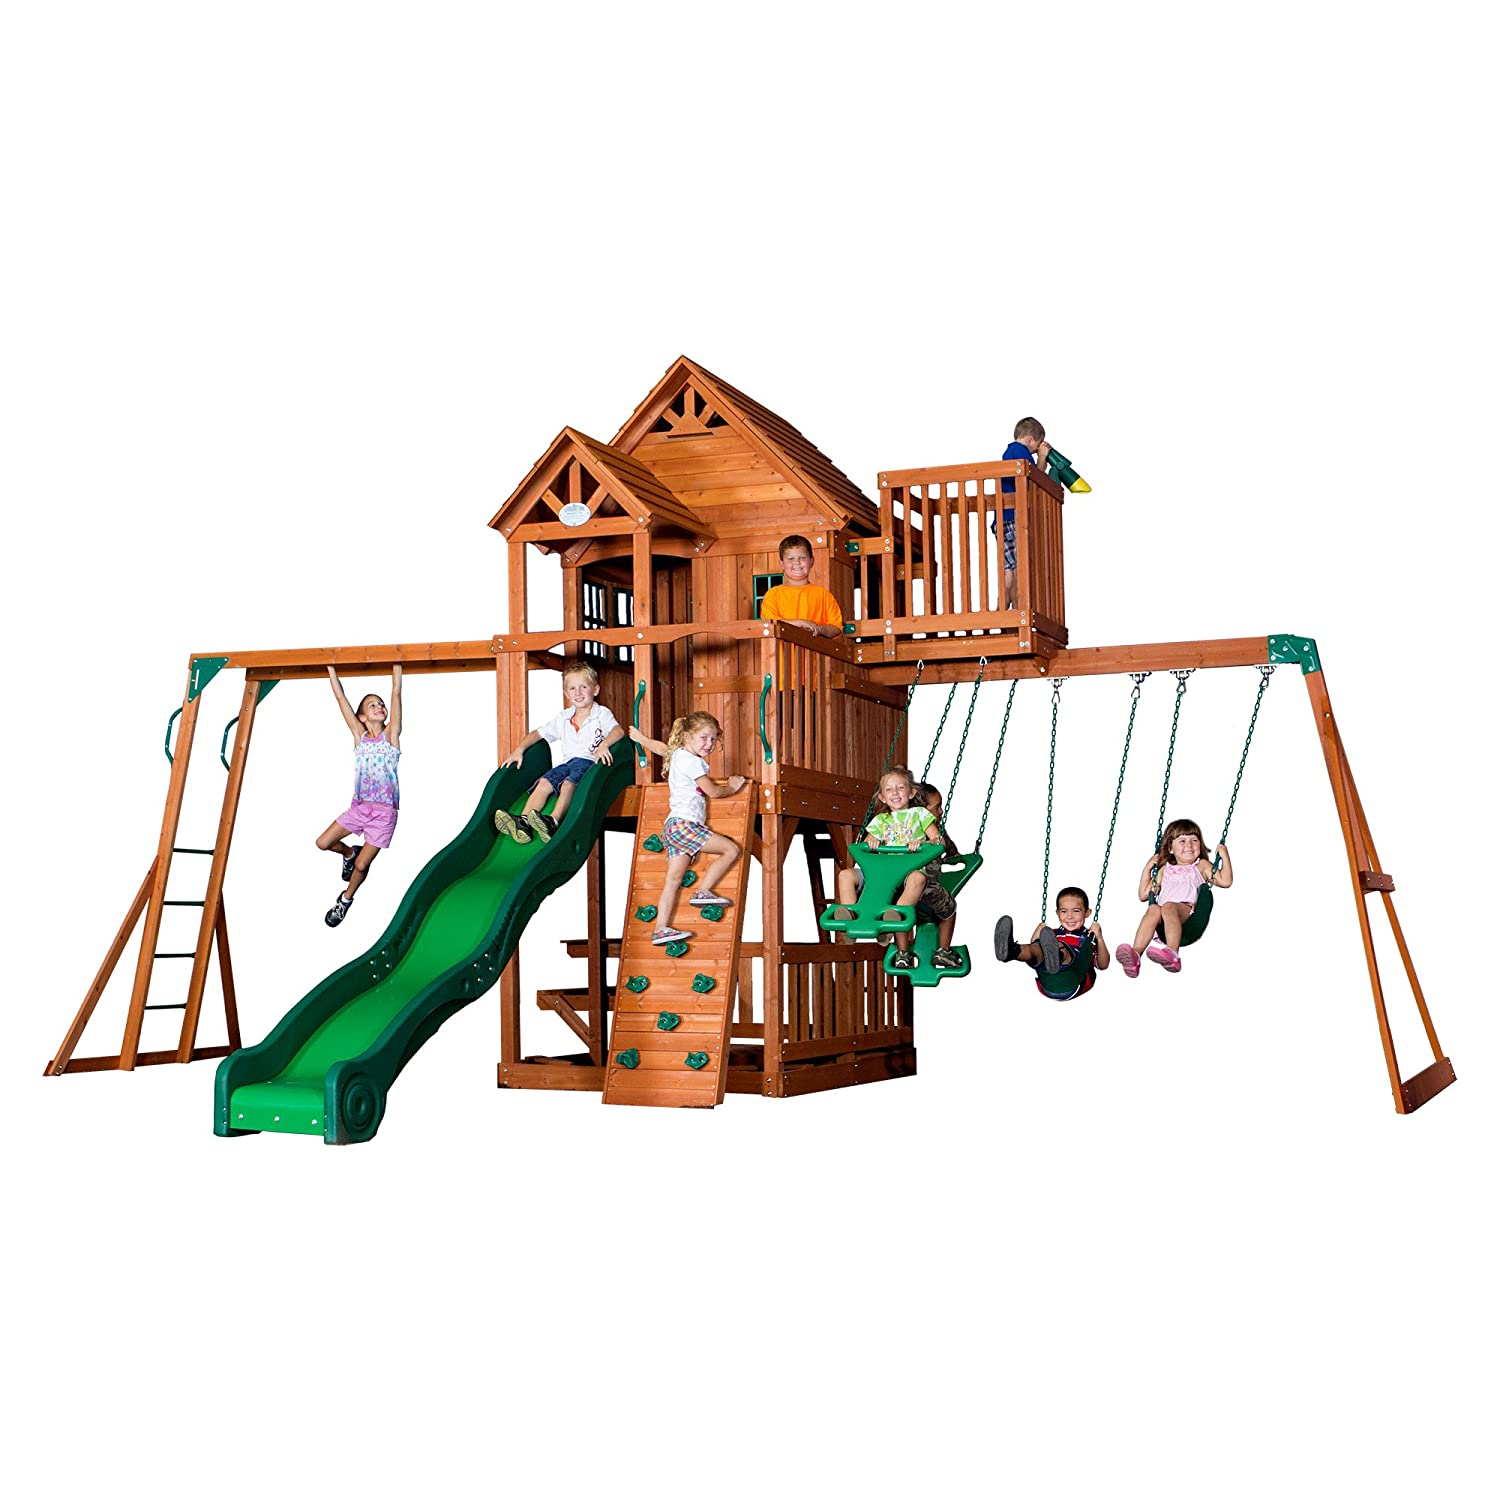 Amazon.com: Play Sets & Playground Equipment: Toys & Games: Play ...